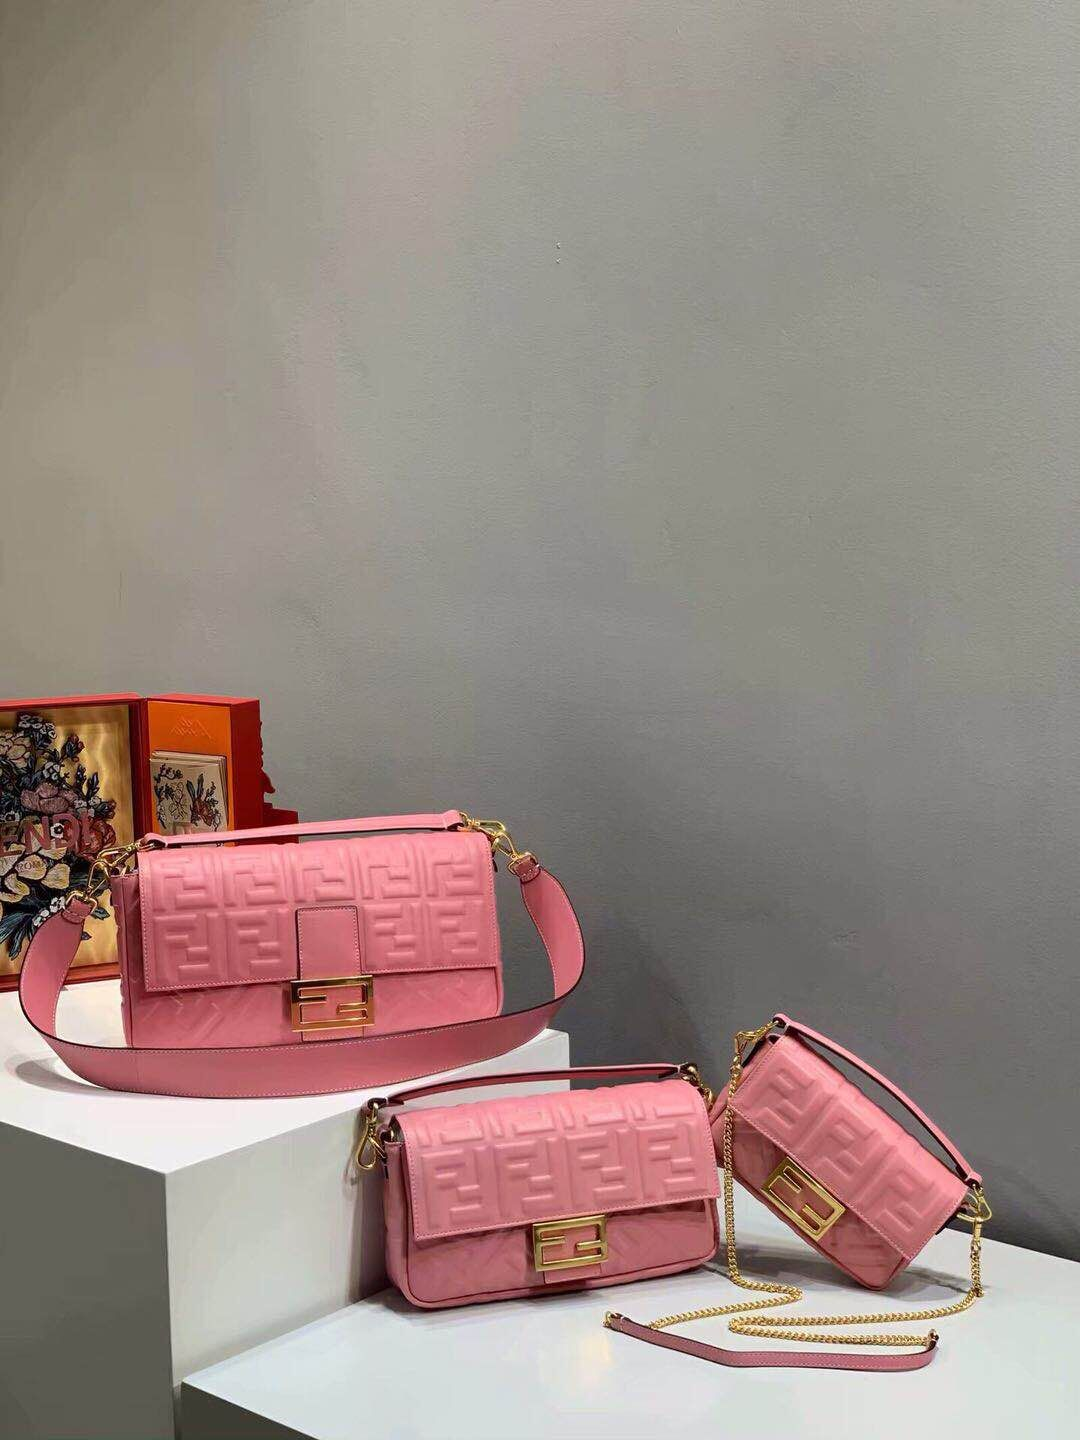 FENDI BAGUETTE large Shoulder Bag 8BR771A Pink